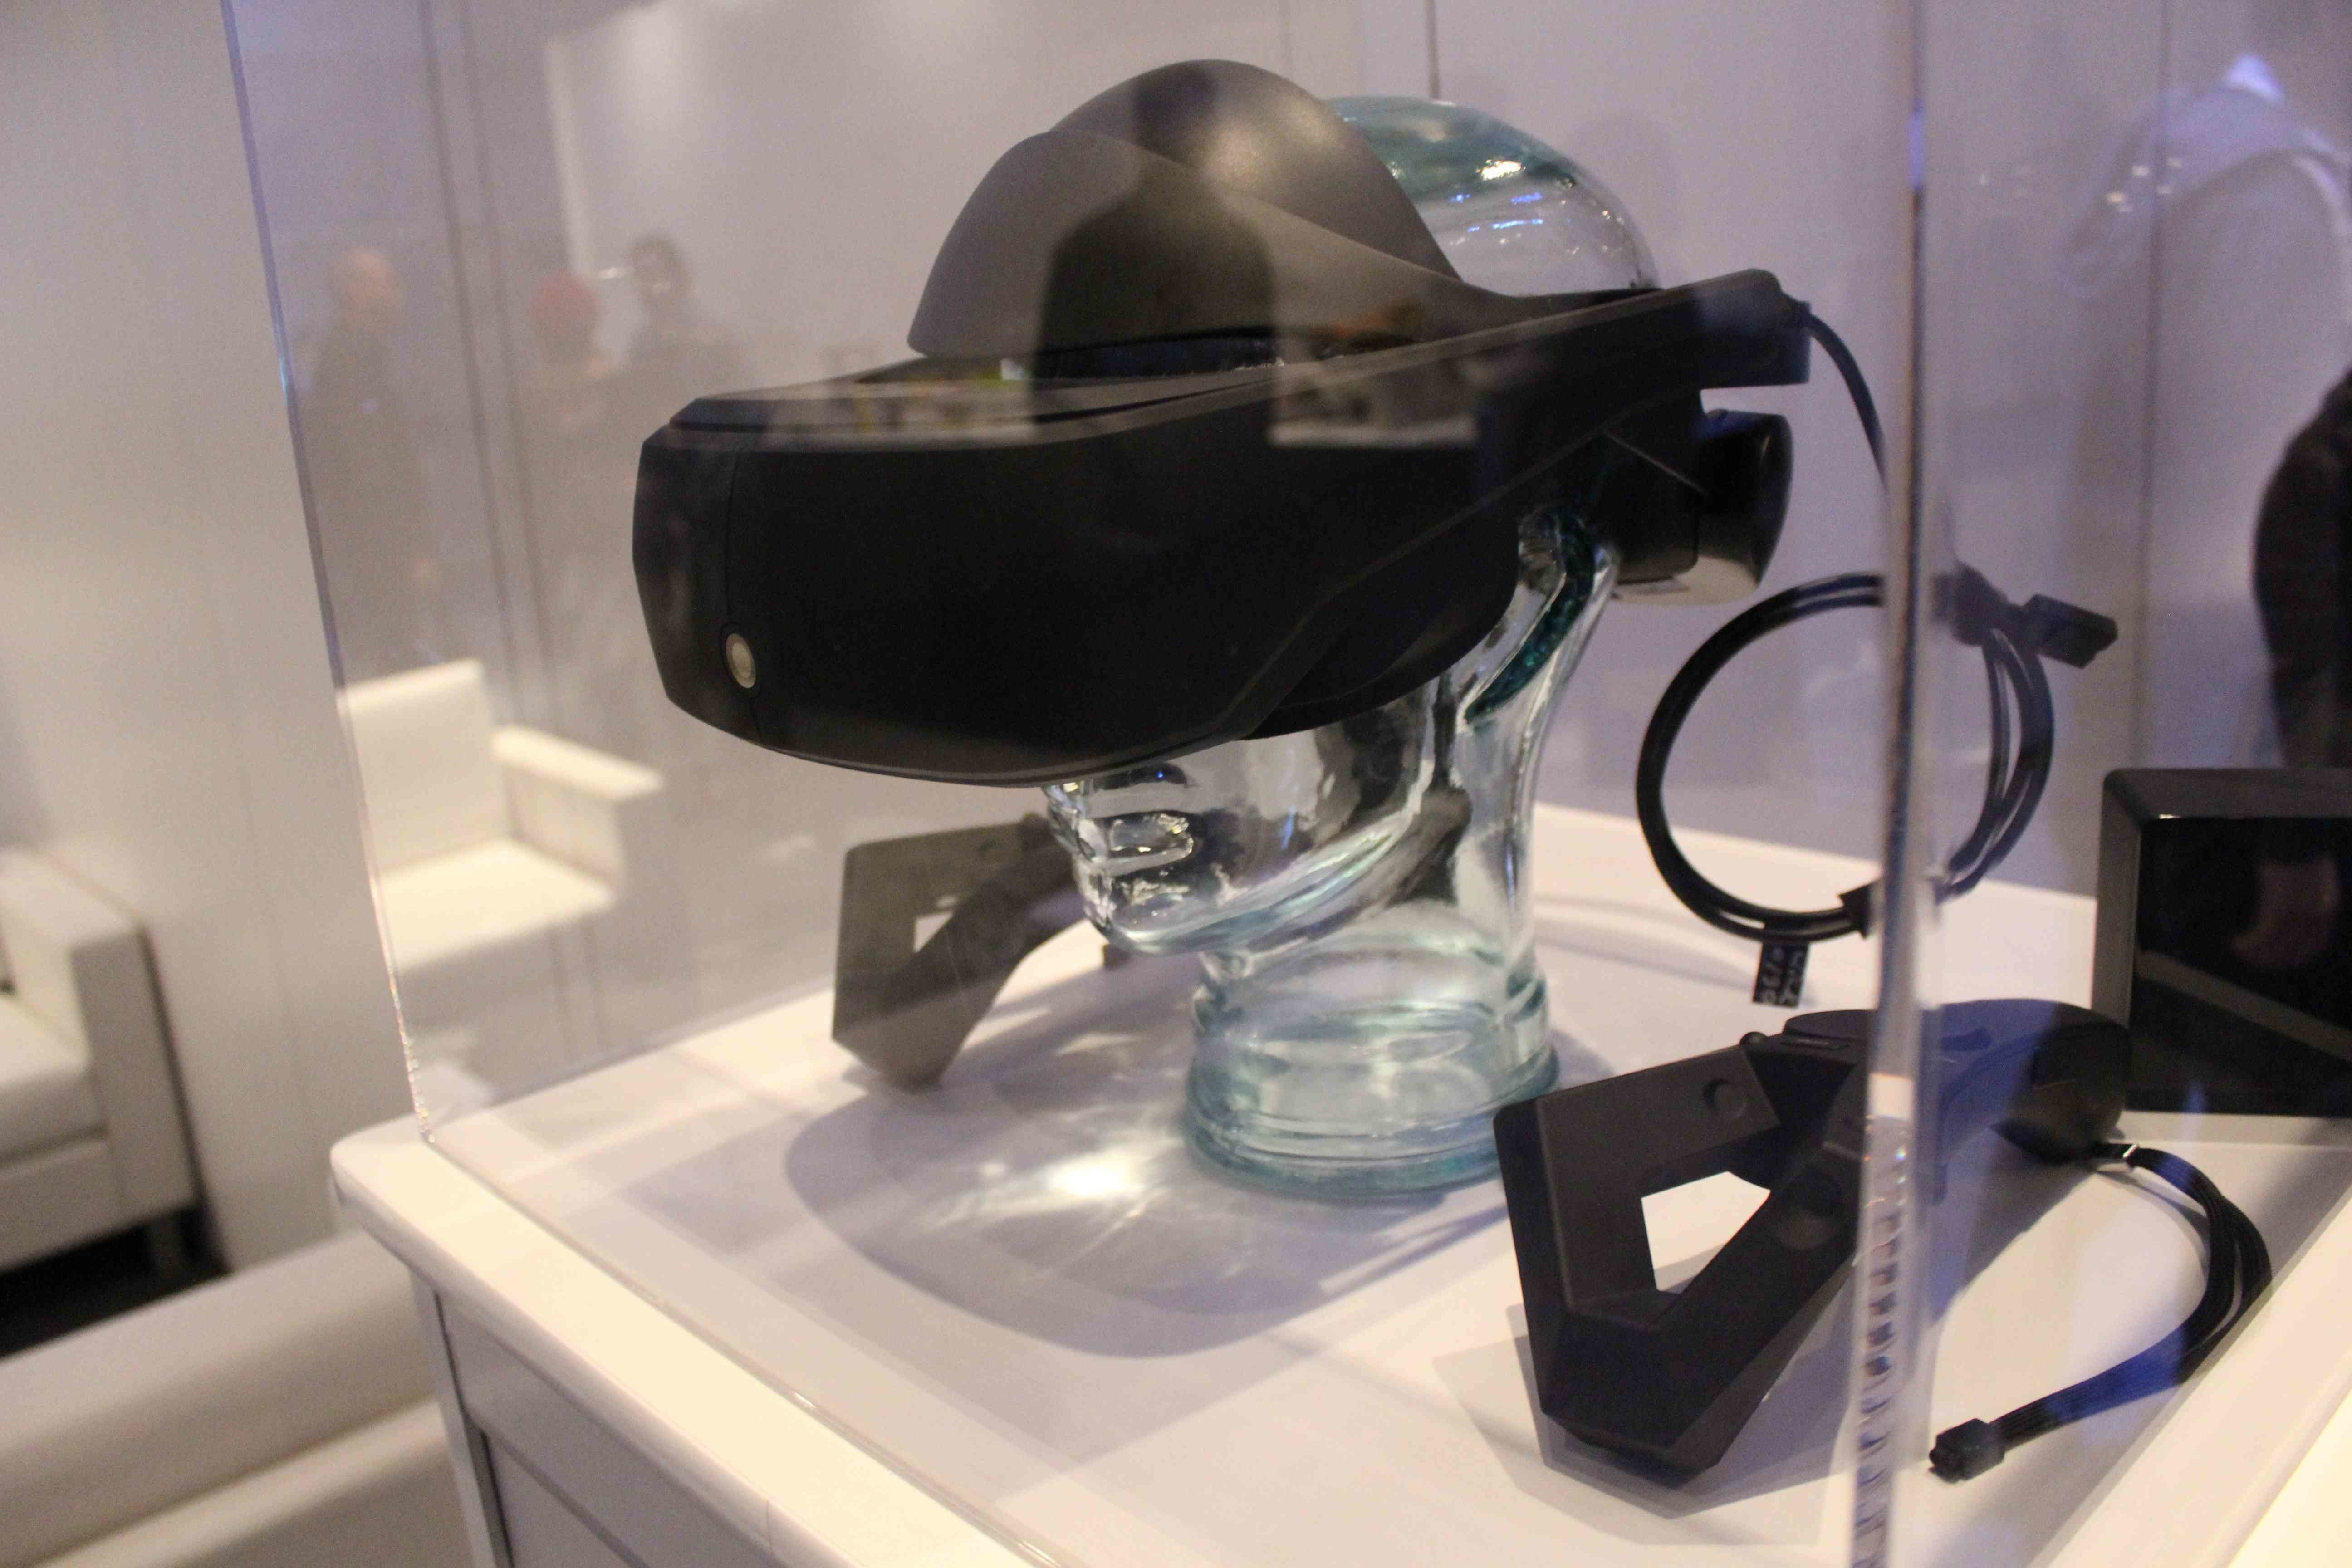 LG's SteamVR headset spotted at the Korean VR festival - Neowin